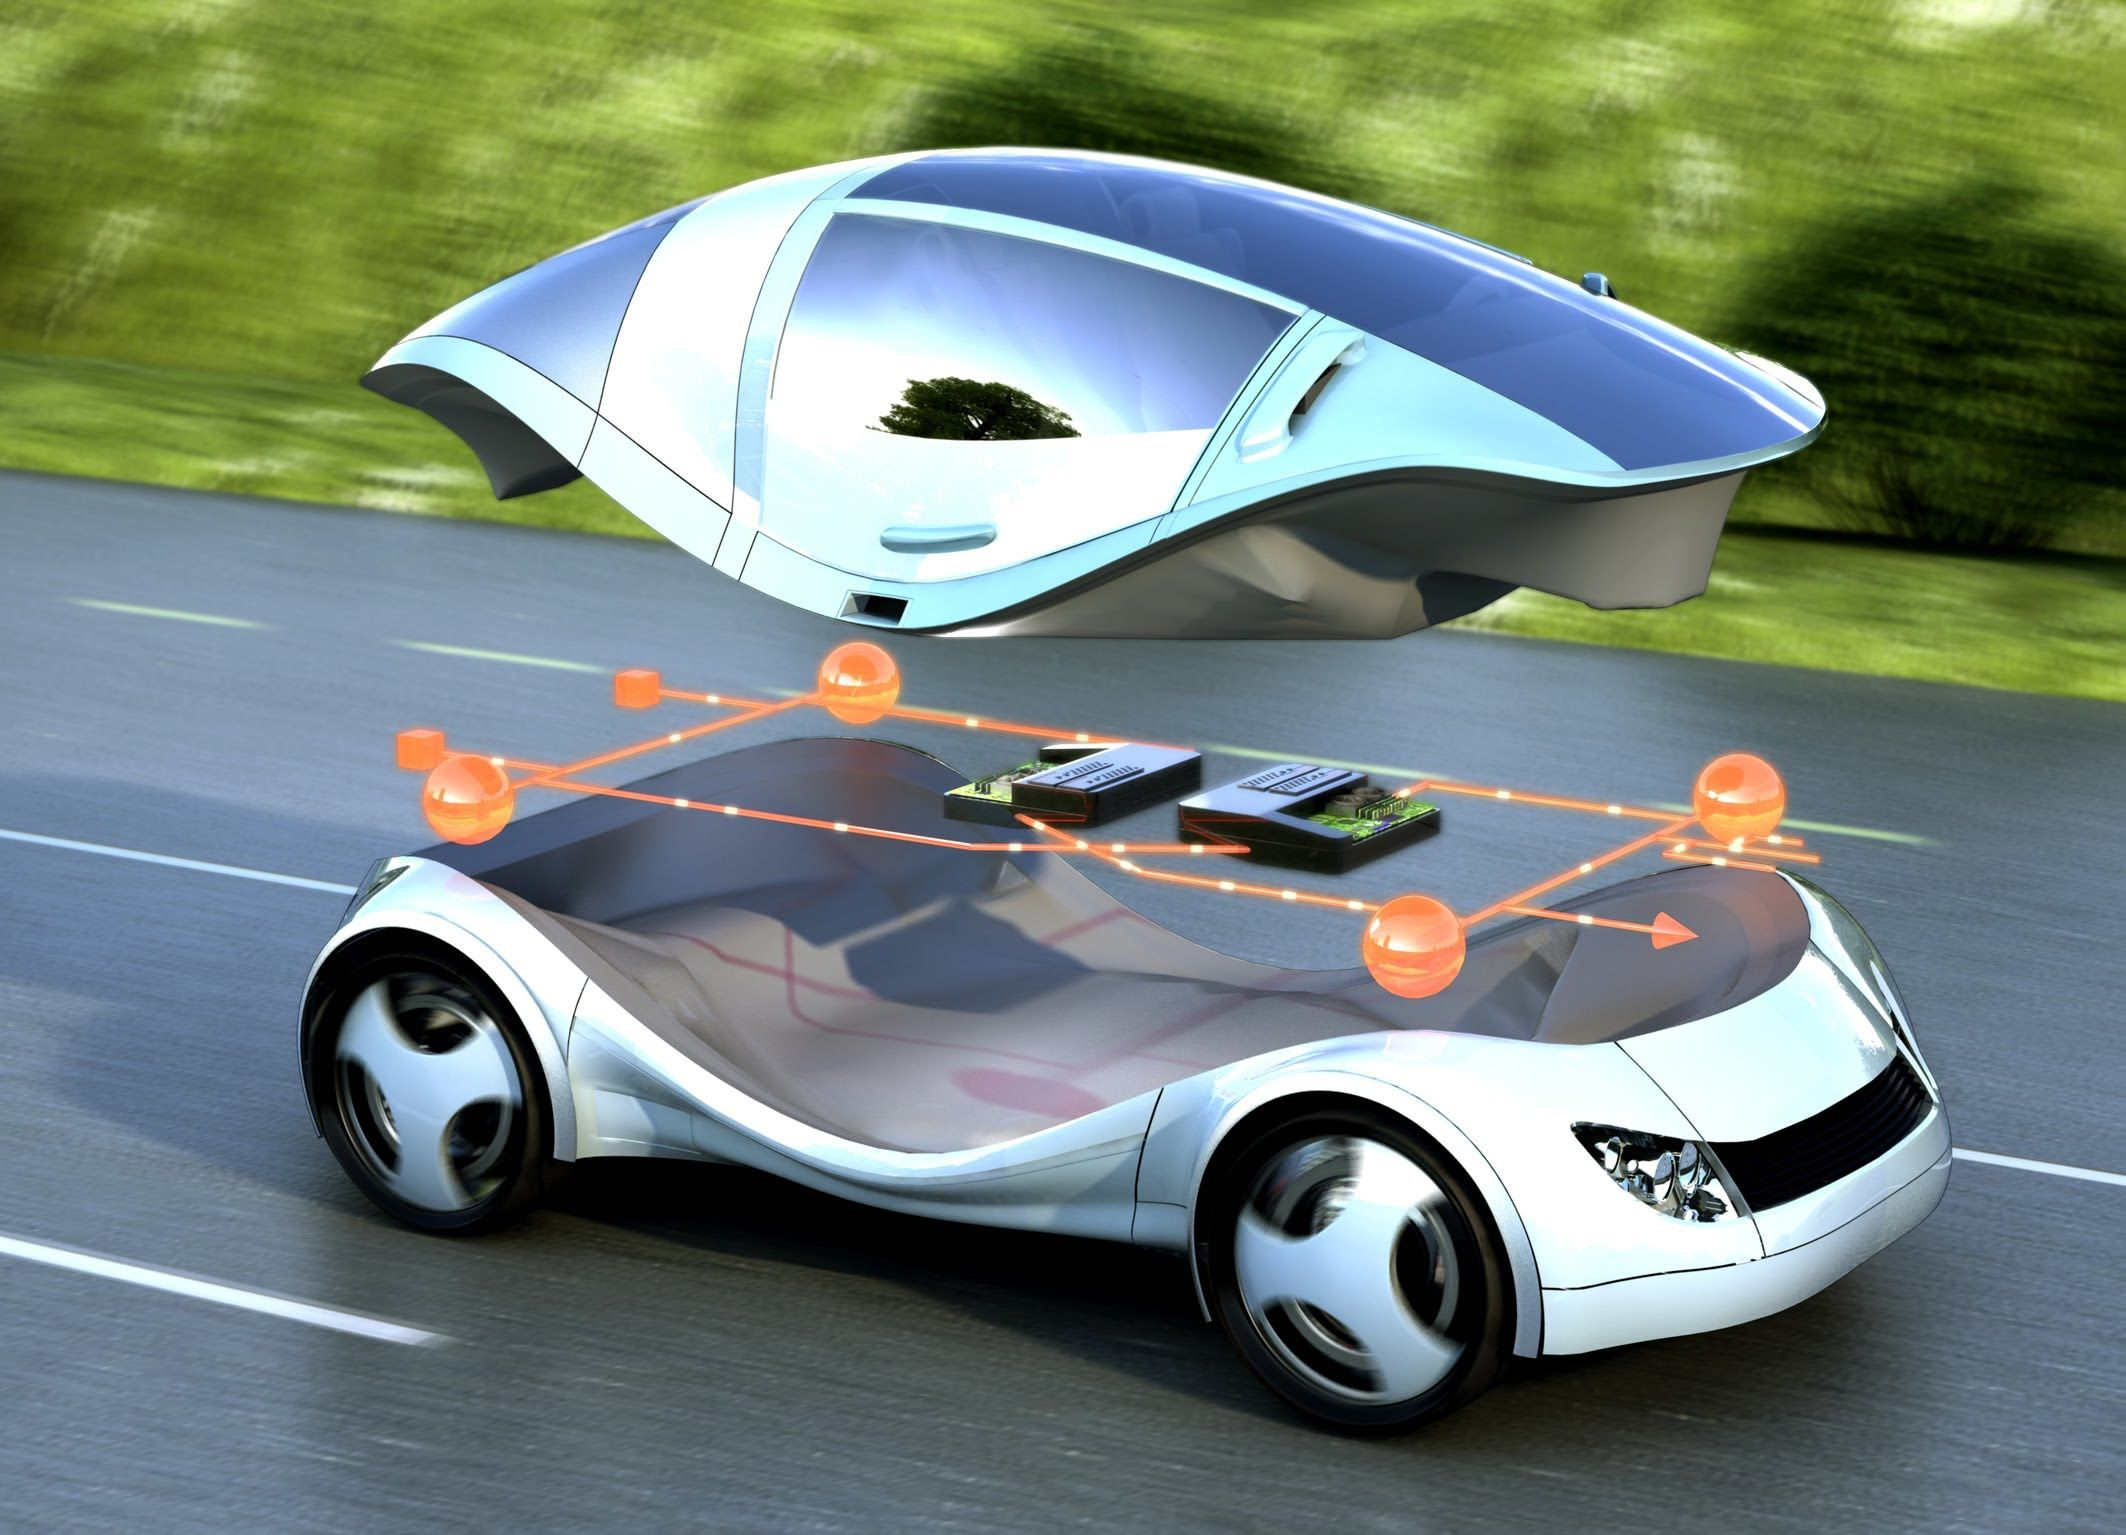 Siemens to transform electric cars into rolling computers by lakshmi sandhana july 2014 the siemens race prototype will allow hardware components to be